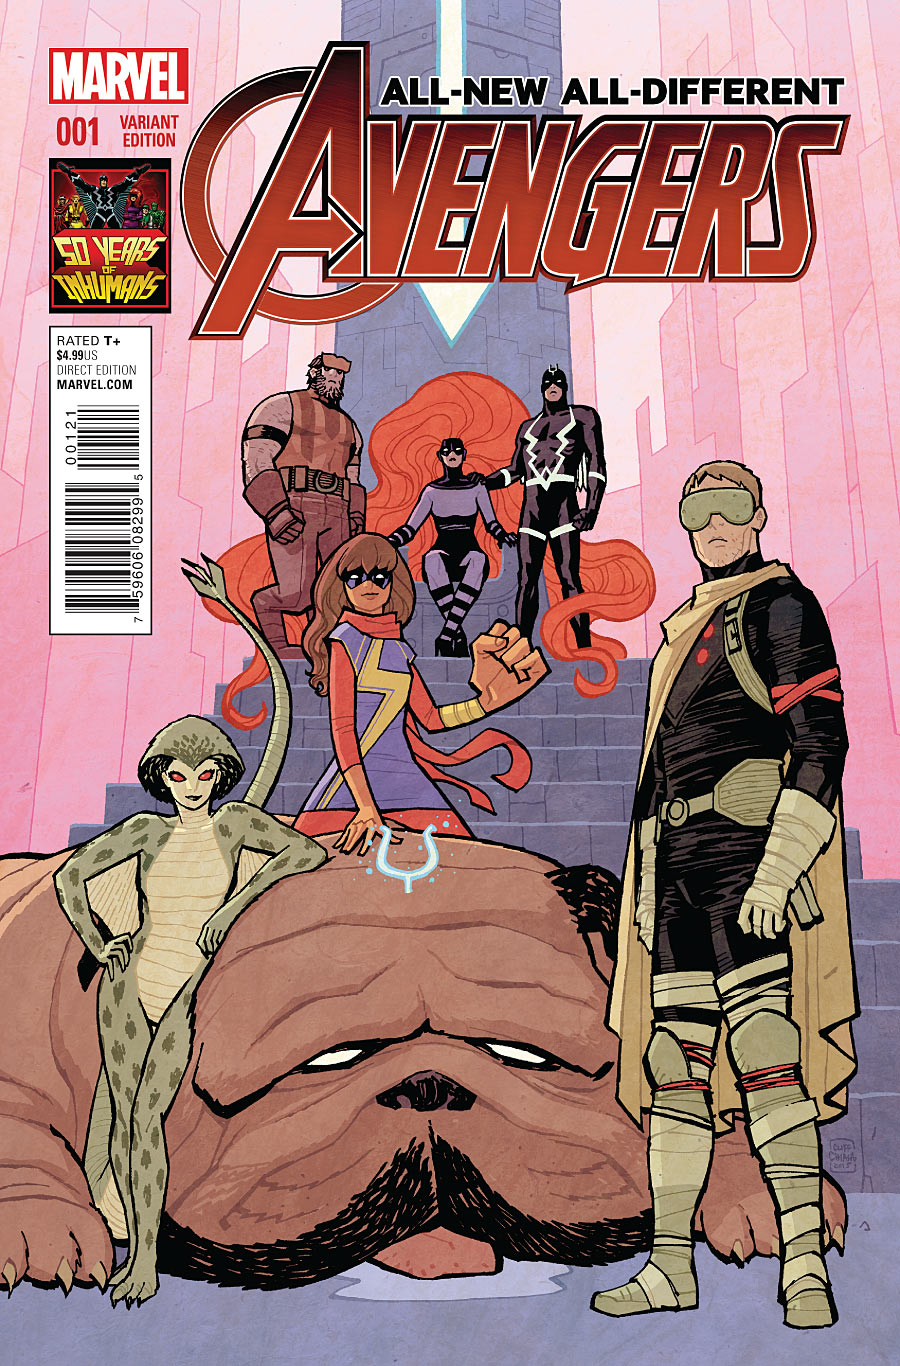 All-New, All-Different Avengers Vol 1 1 50 Years of Inhumans Variant.jpg